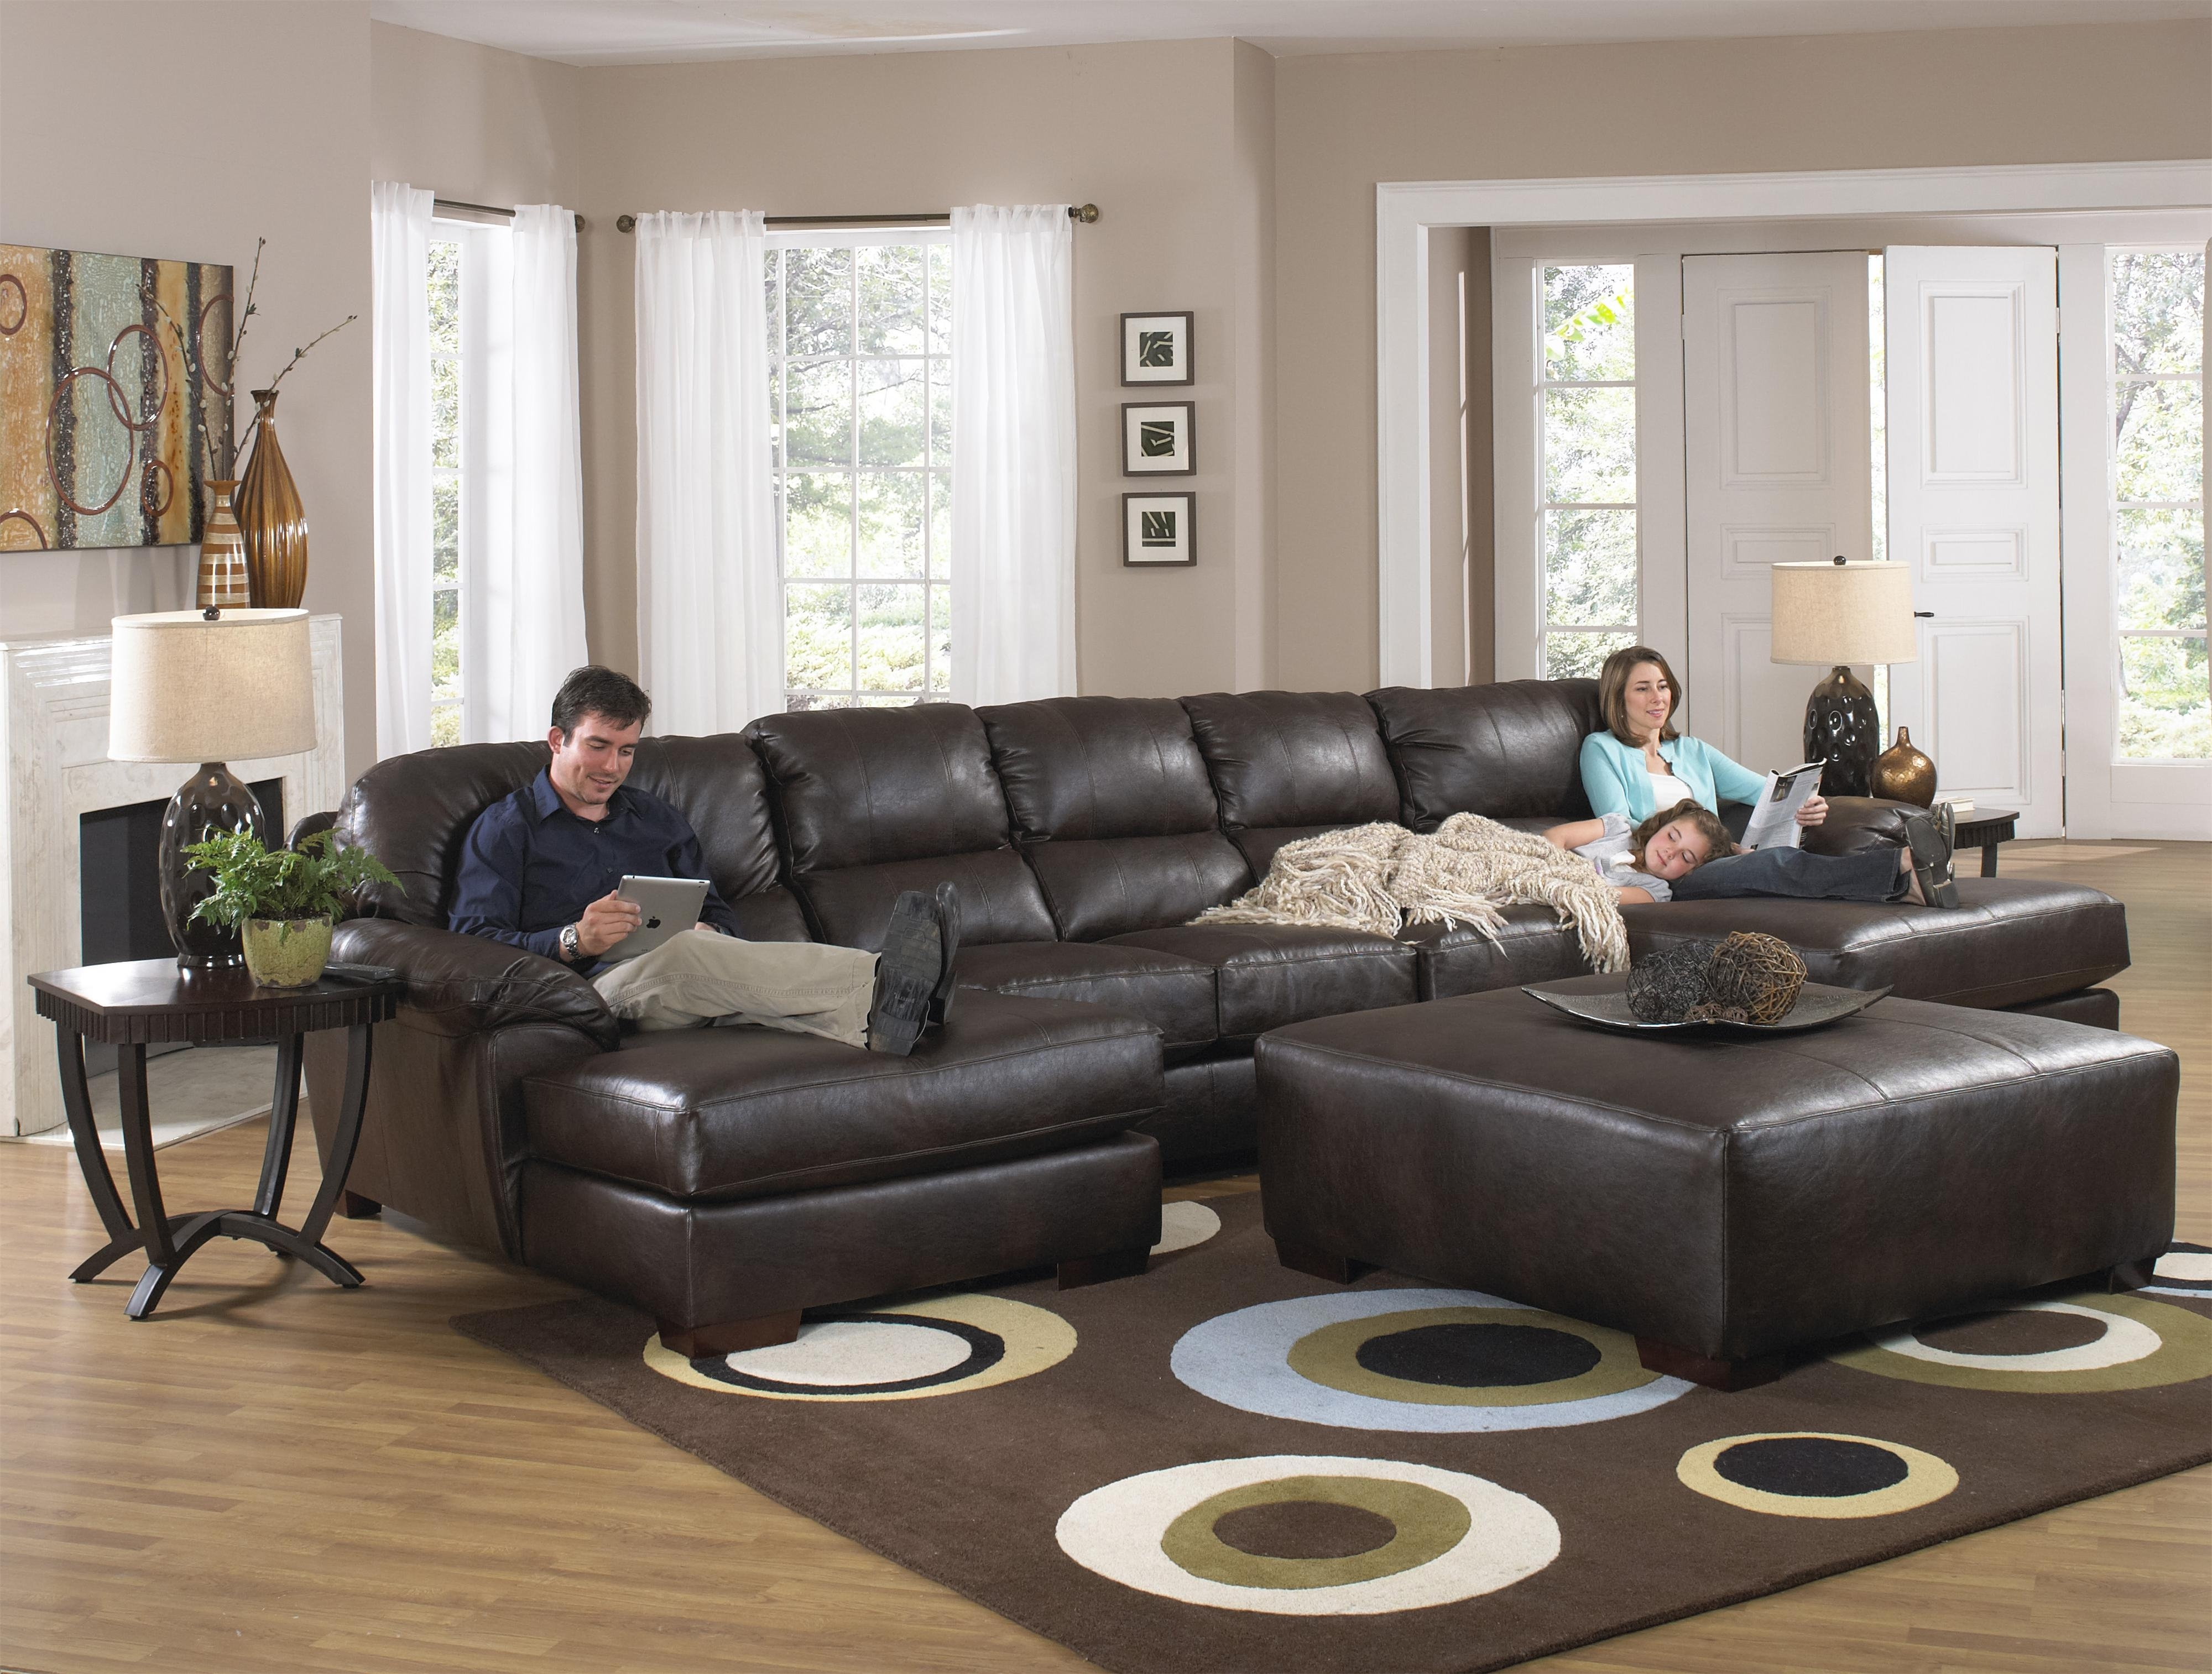 Preferred Leather Couches With Chaise Regarding Two Chaise Sectional Sofa With Five Total Seatsjackson (View 11 of 15)